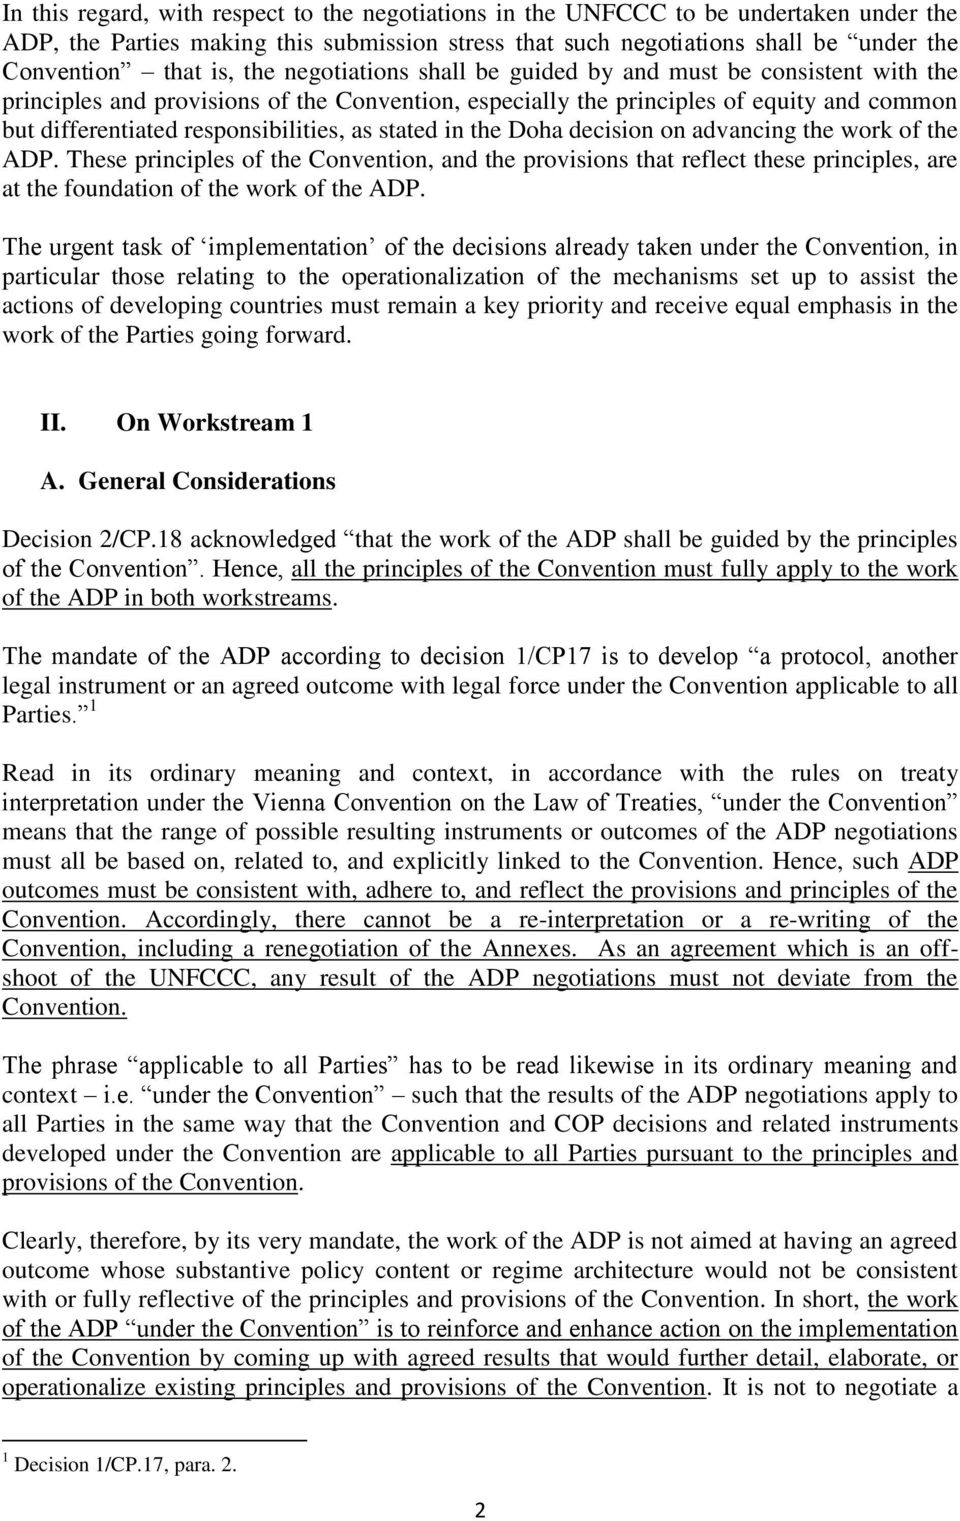 stated in the Doha decision on advancing the work of the ADP. These principles of the Convention, and the provisions that reflect these principles, are at the foundation of the work of the ADP.